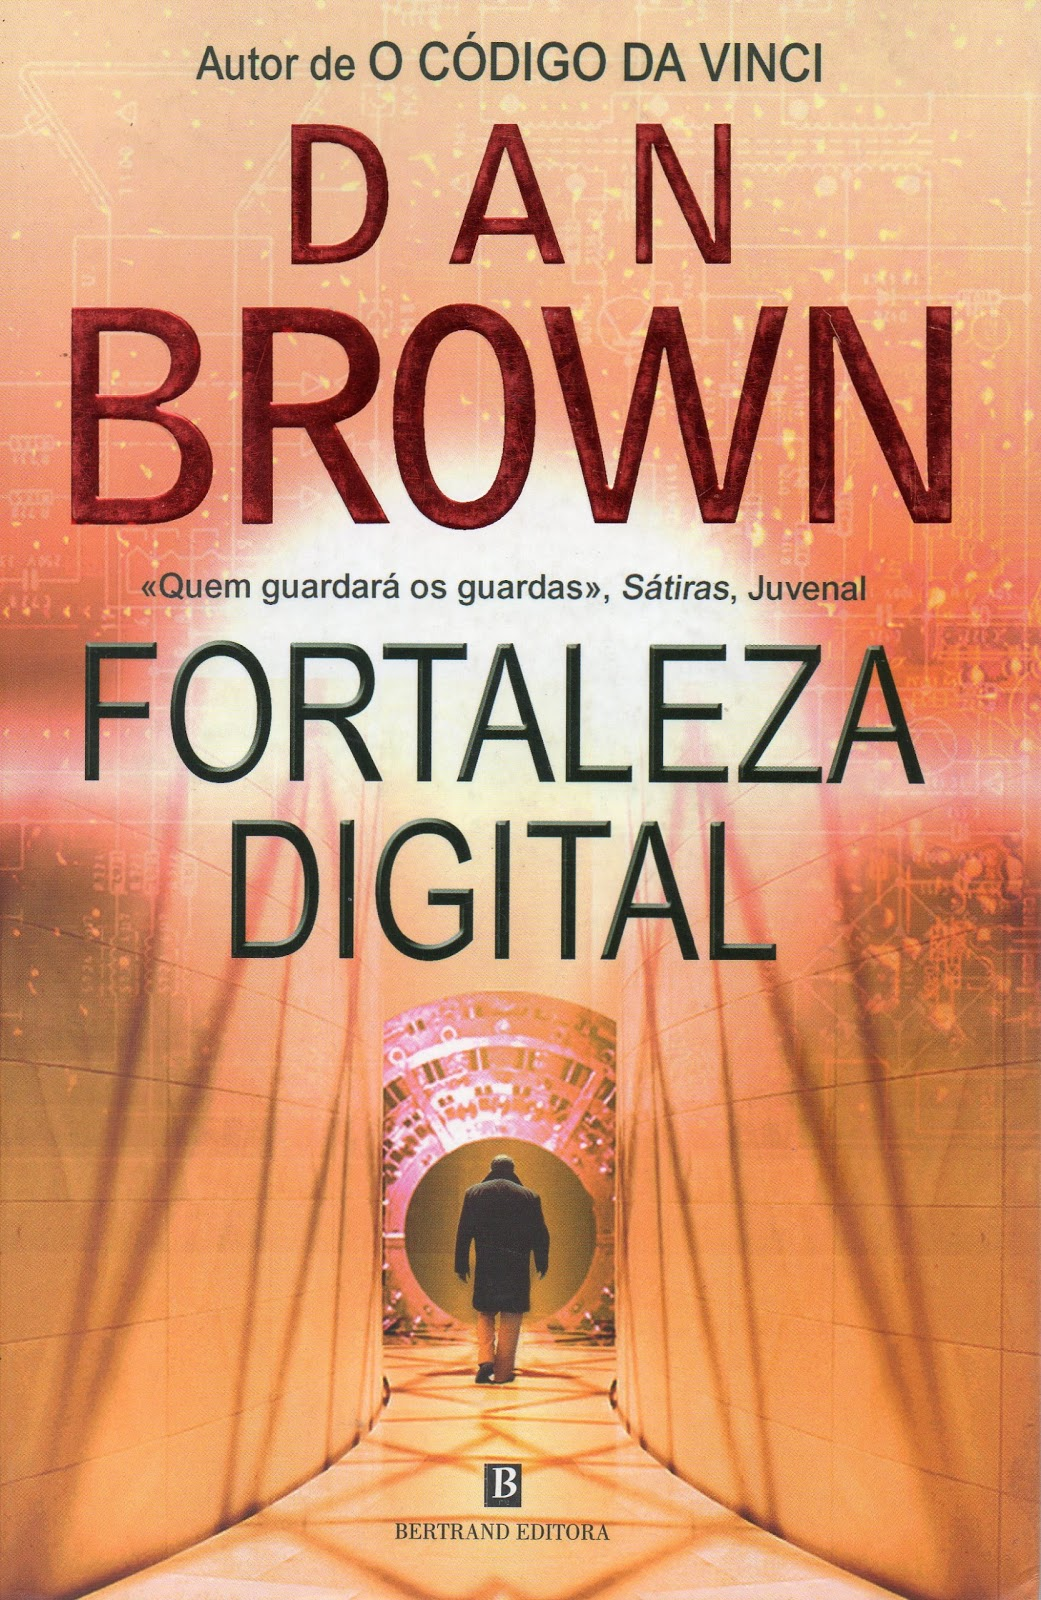 Fortaleza Digital, de Dan Brown